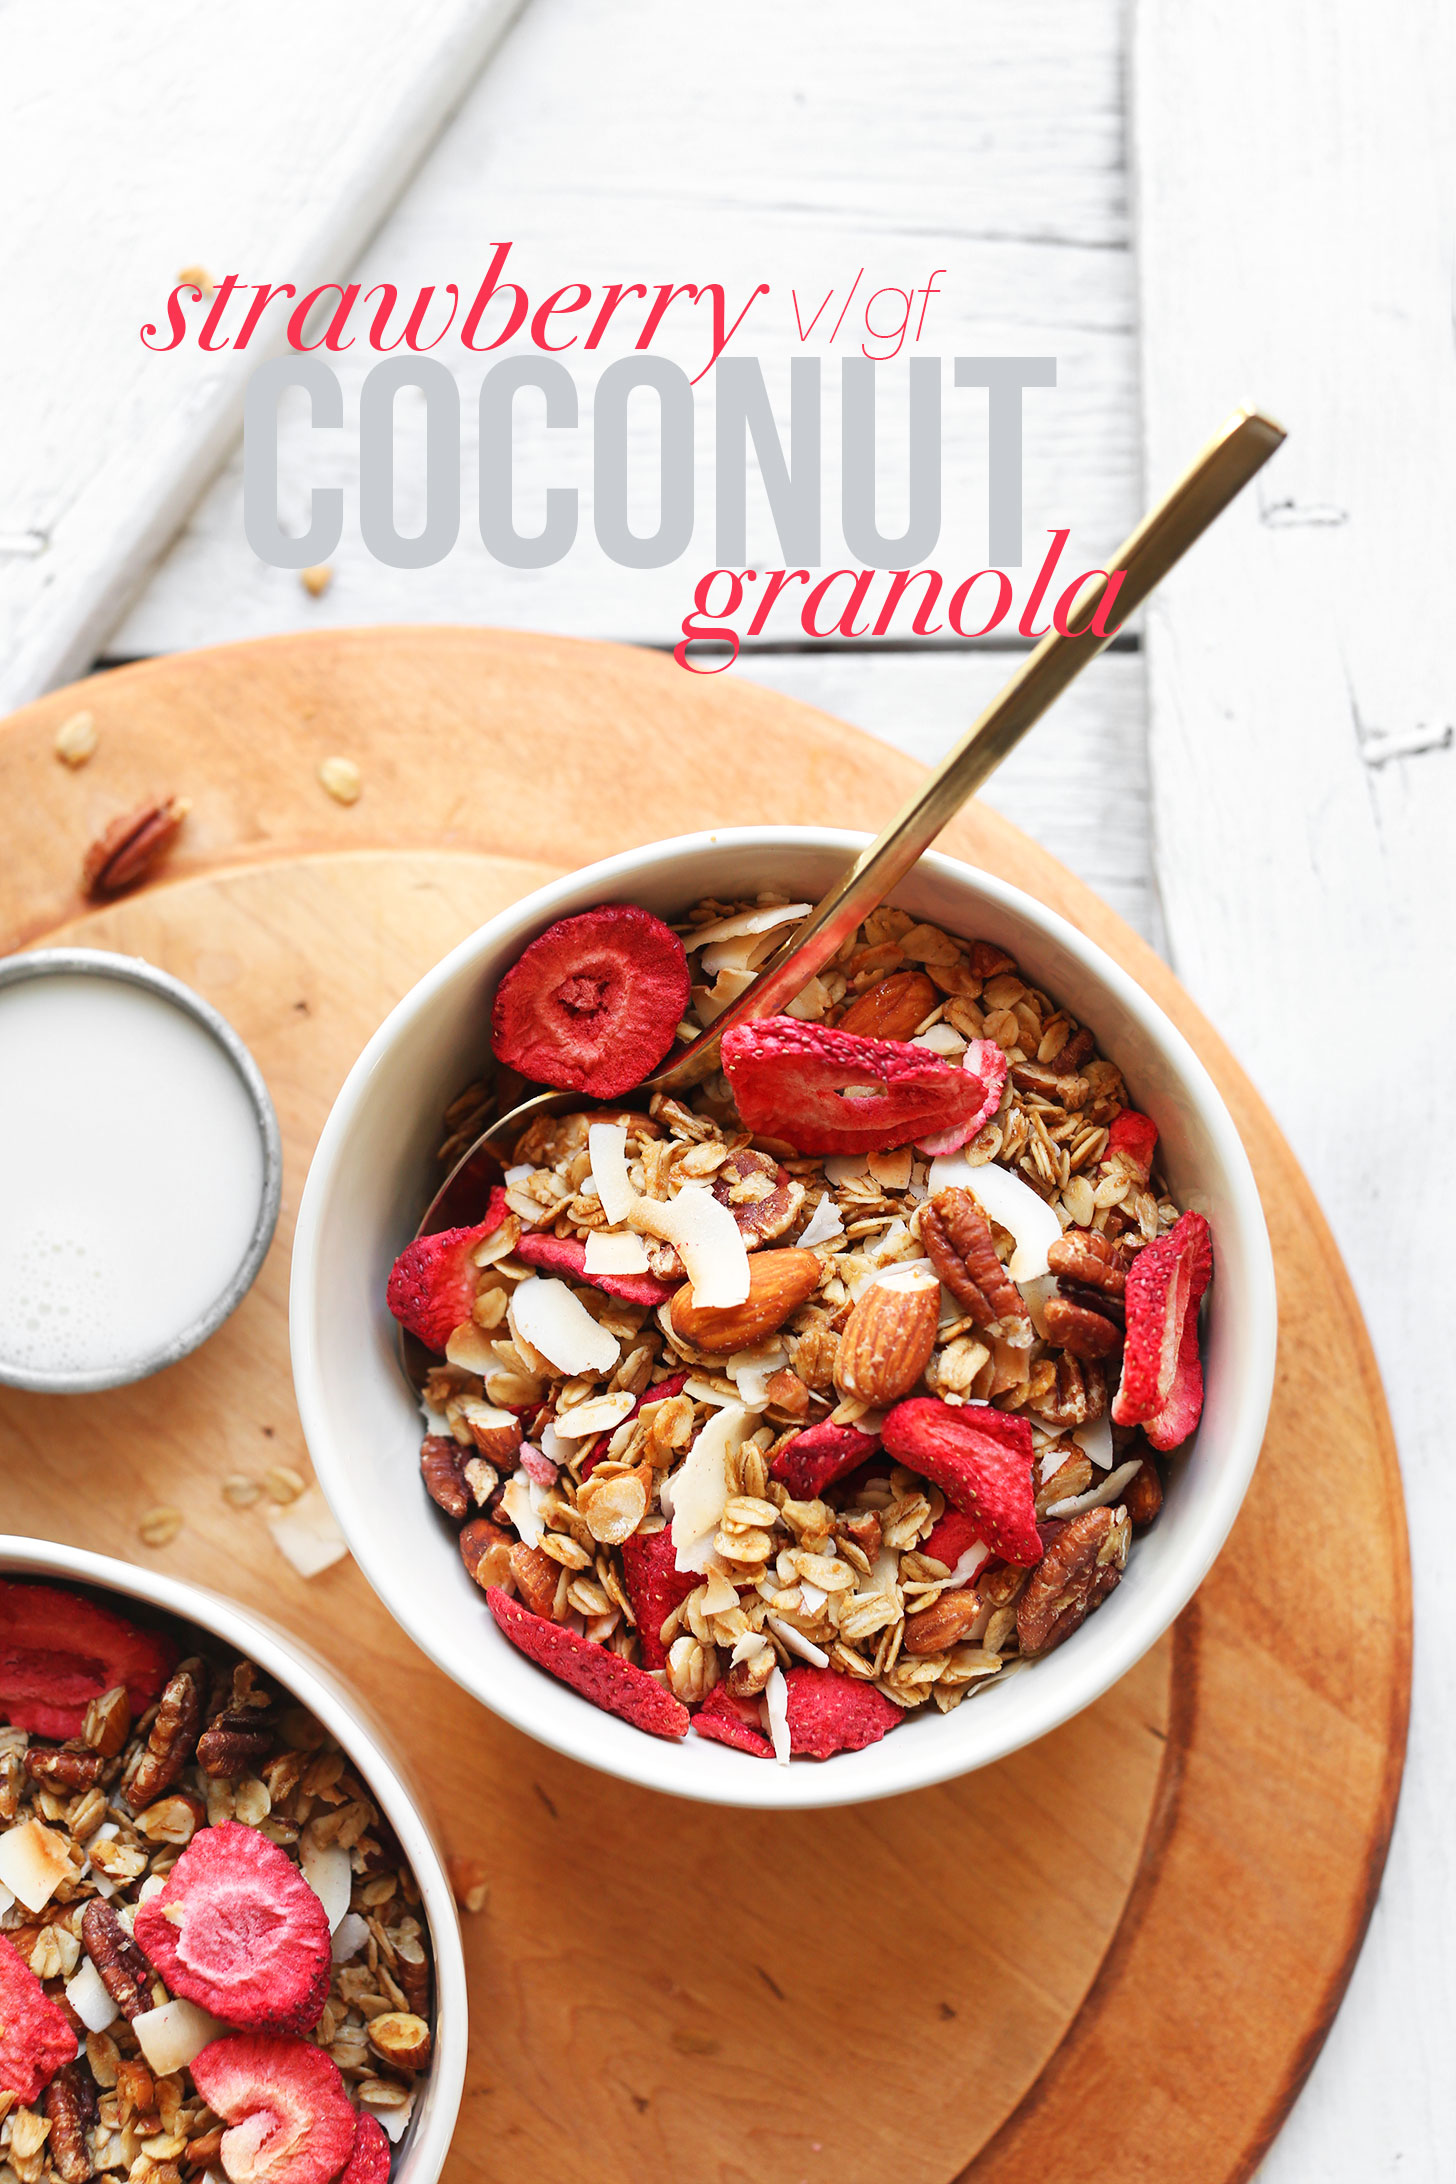 Bowls of our gluten-free vegan Coconut Strawberry Granola for breakfast